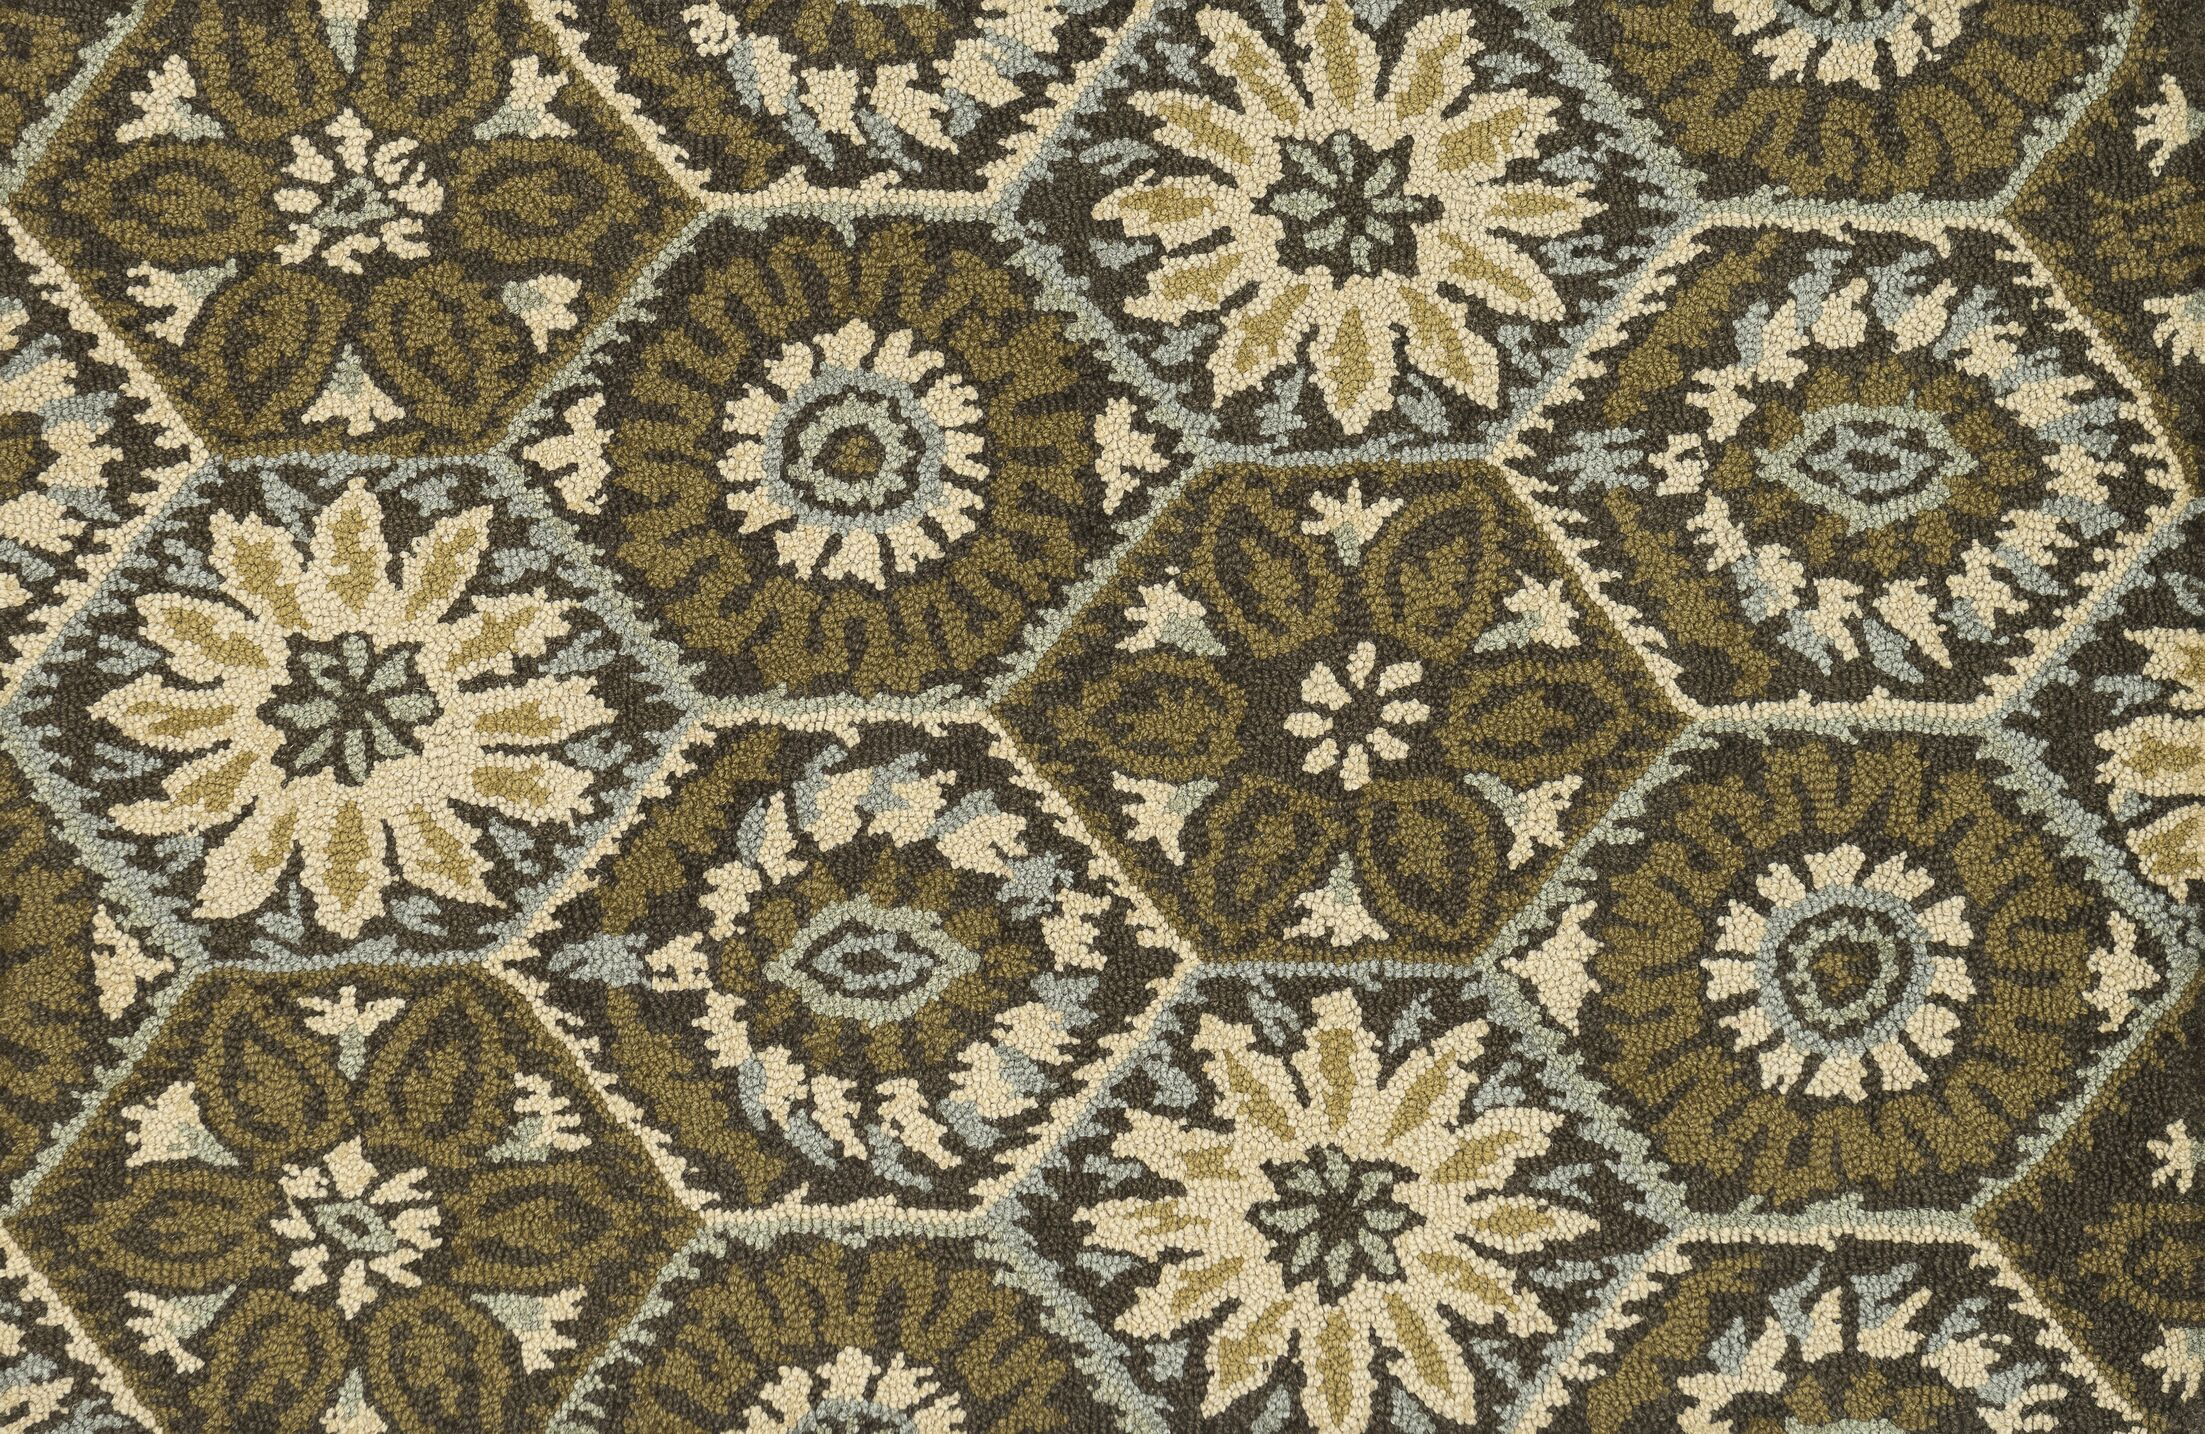 Keffer Hand-Hooked Brown/Green Area Rug Rug Size: Rectangle 7'10